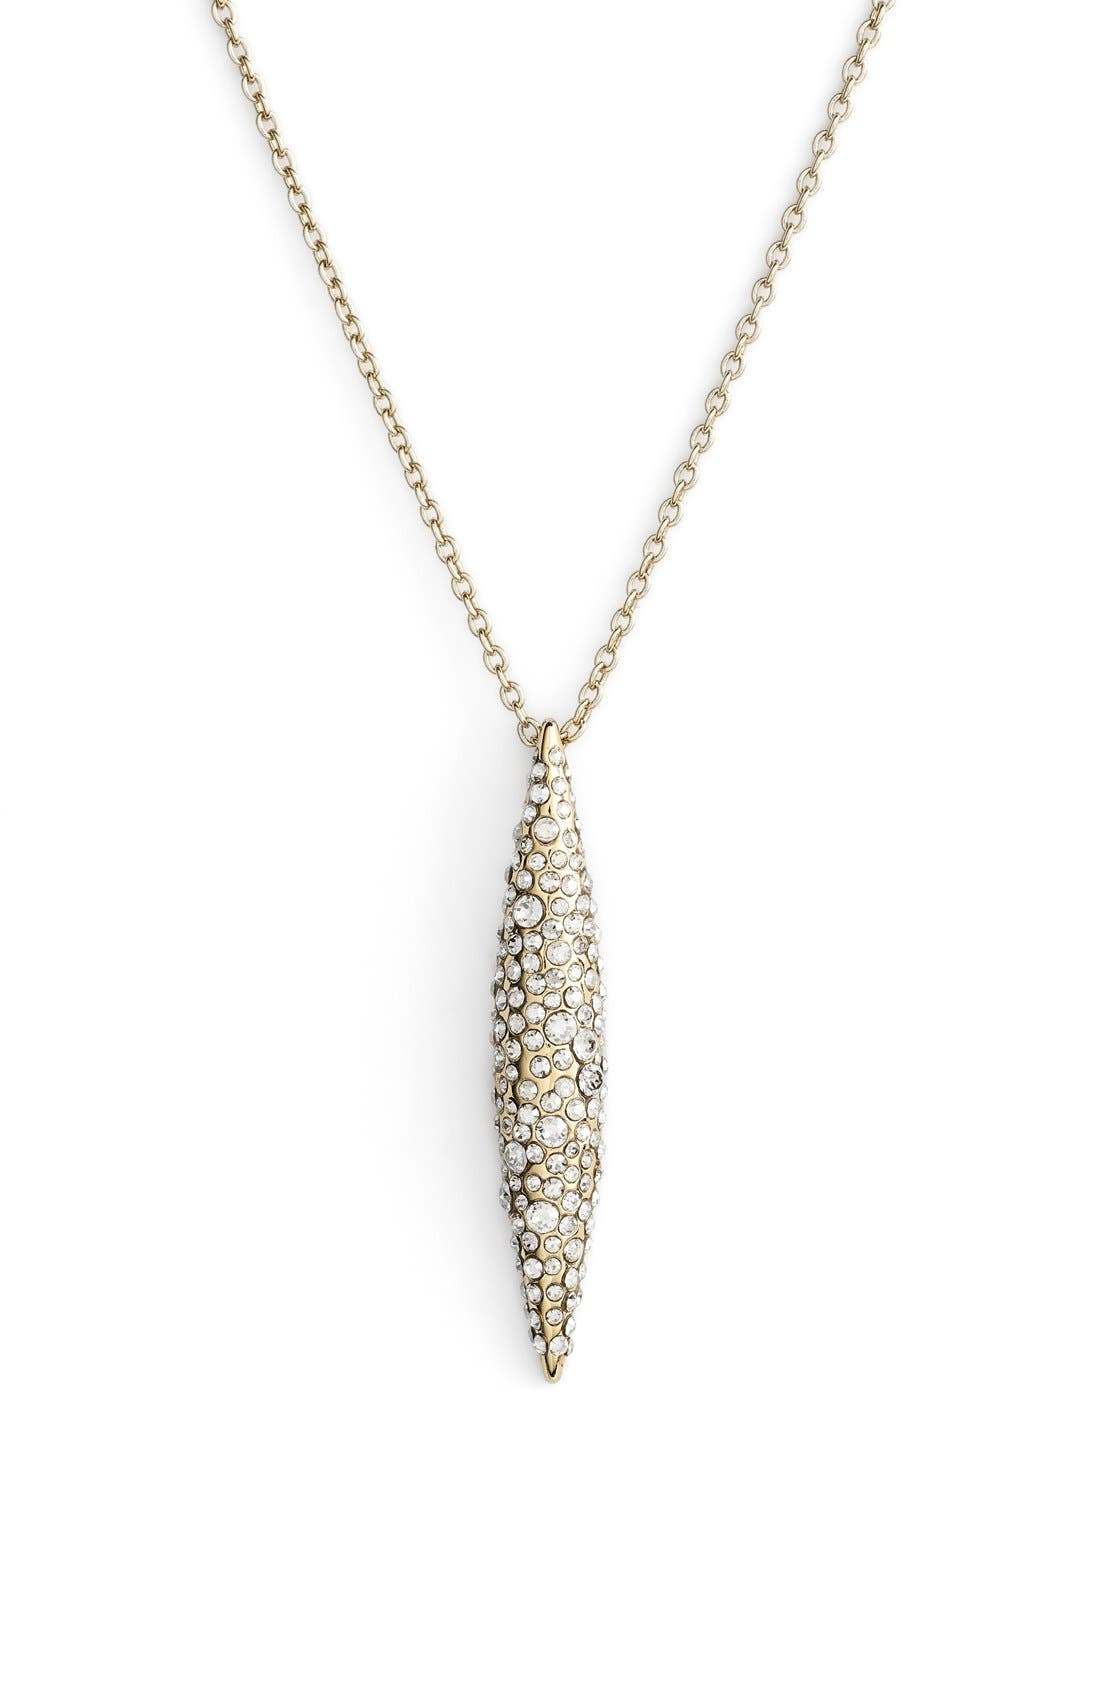 Alternate Image 1 Selected - Alexis Bittar 'Miss Havisham' Crystal Encrusted Spear Pendant Necklace